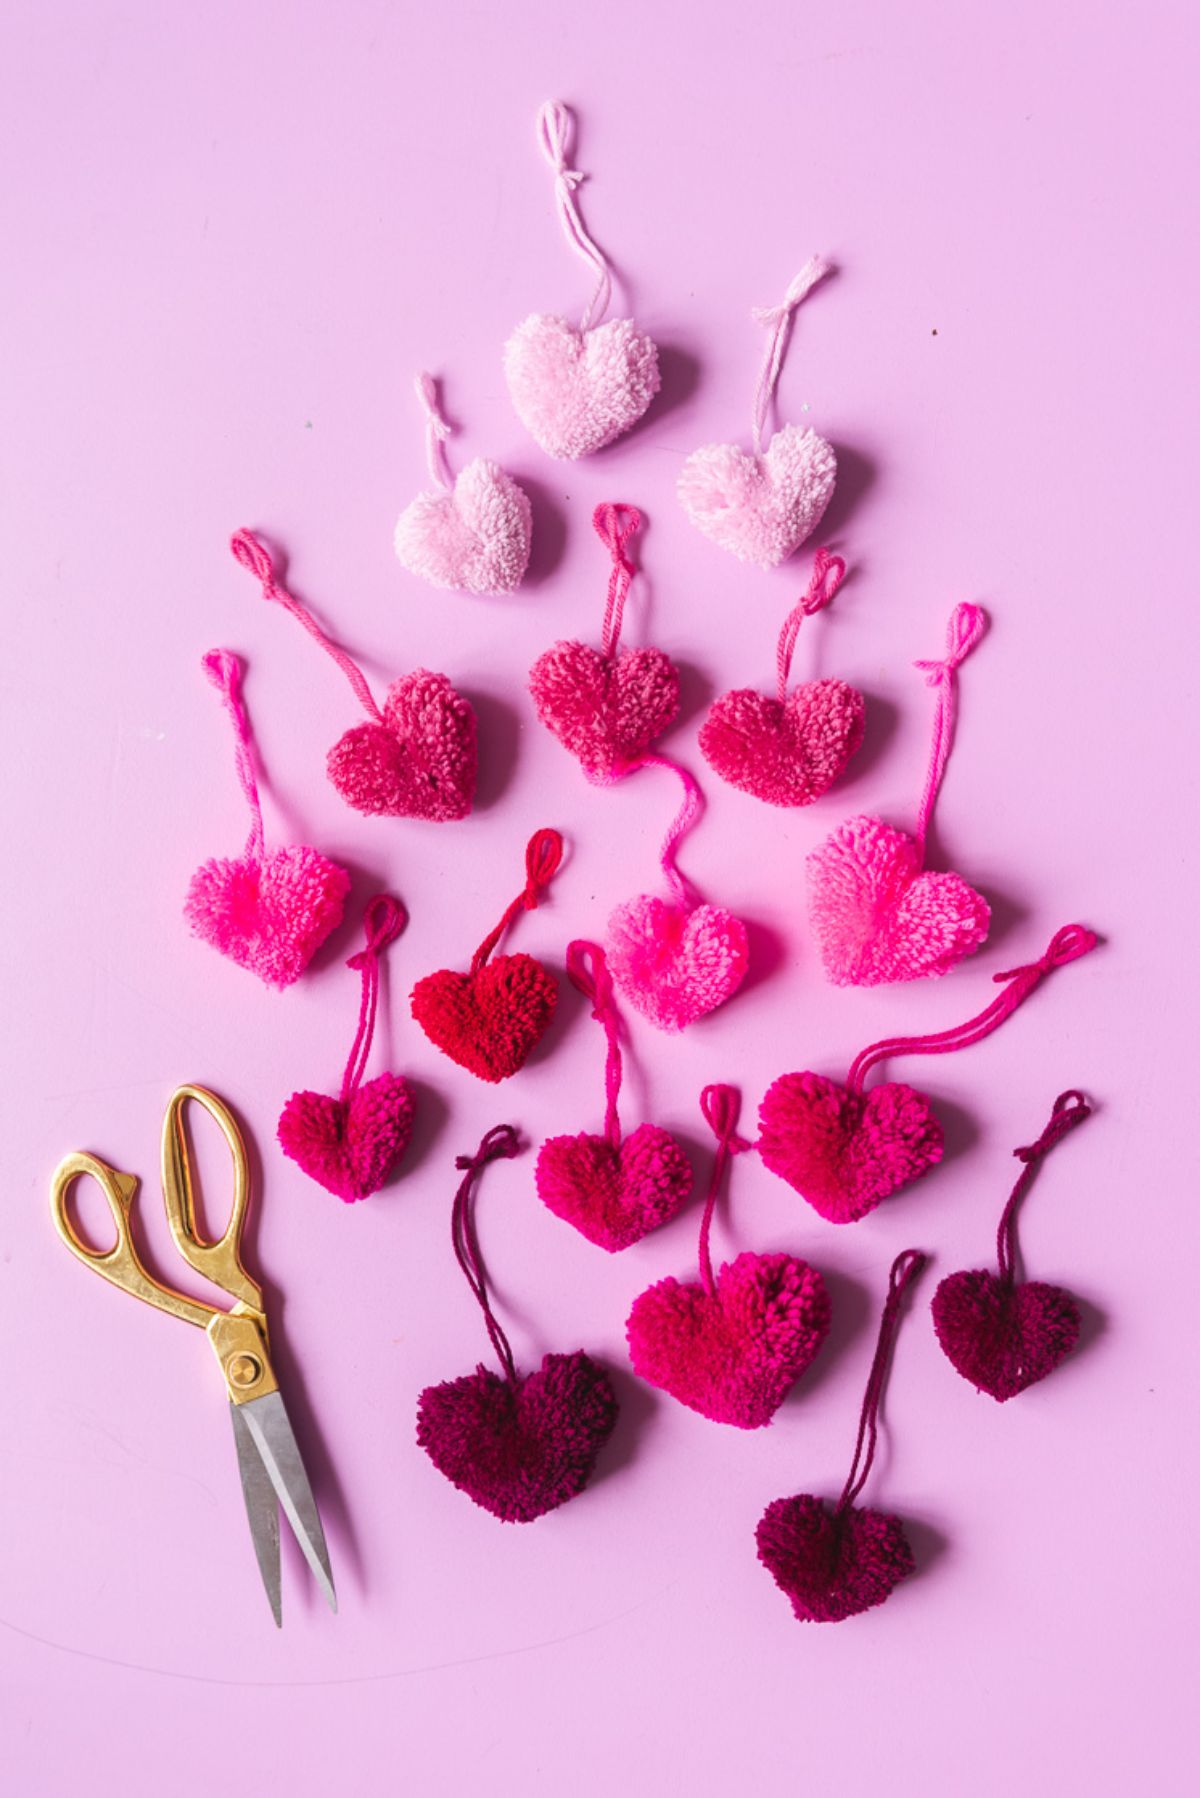 on a pink background are 16 knitted hearts graded from light pink to dark red. On the left is a pari of yellow handled scissors